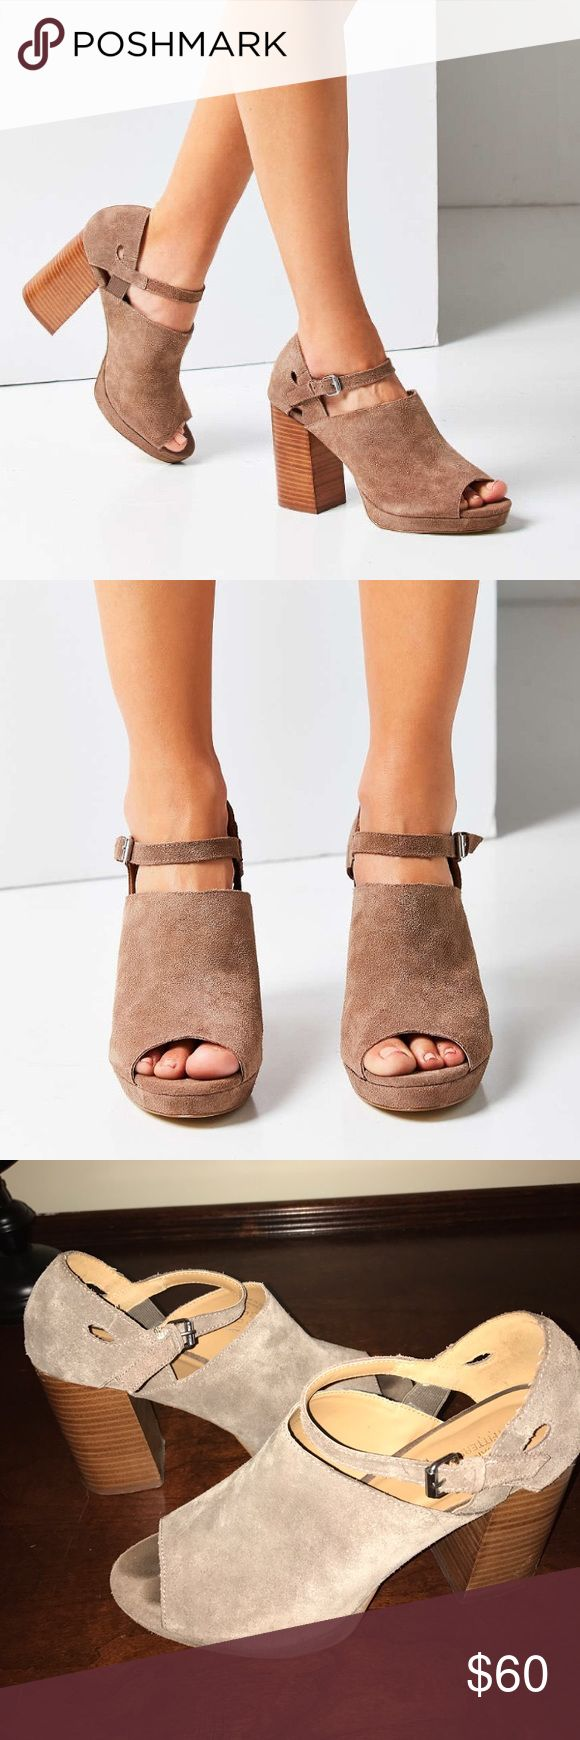 """UO Suede Stacked Heels Janis Suede Stacked Heels by Urban Outfitters. GORGEOUS and really comfortable!!! When I wore these, I got a million compliments. They are just large on me, sadly. 4"""" heel with a platform. The strap at the ankle is adjustable. True to size! Urban Outfitters Shoes Heels"""